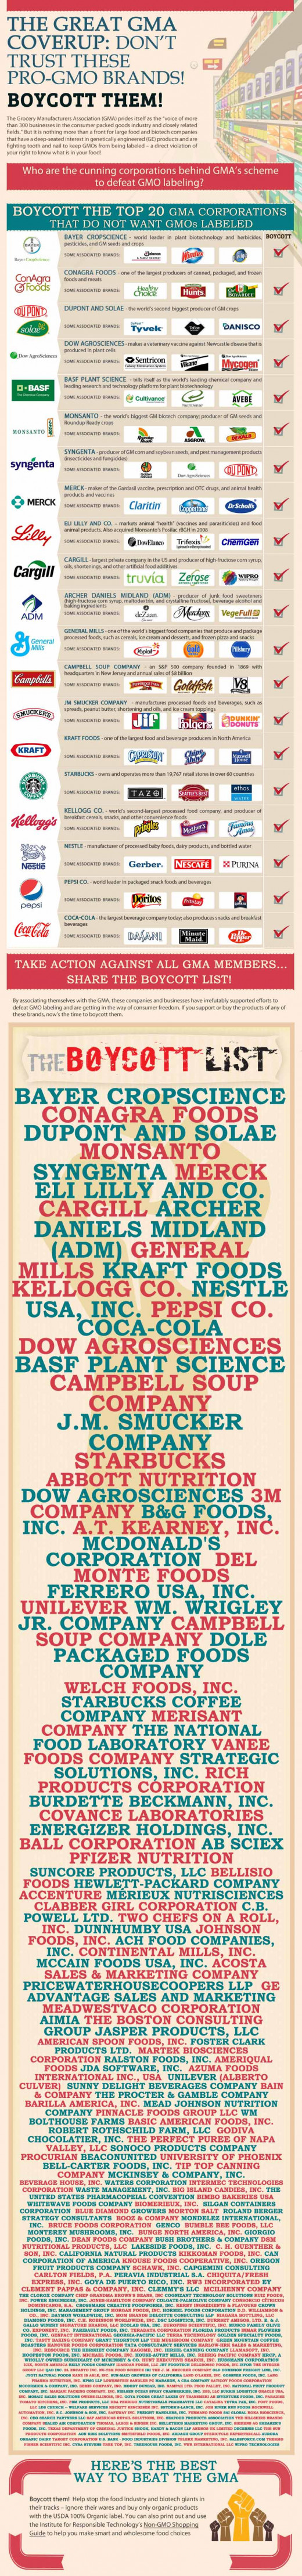 These are the companies that do not want GMO labeling. Hmm, wonder why?